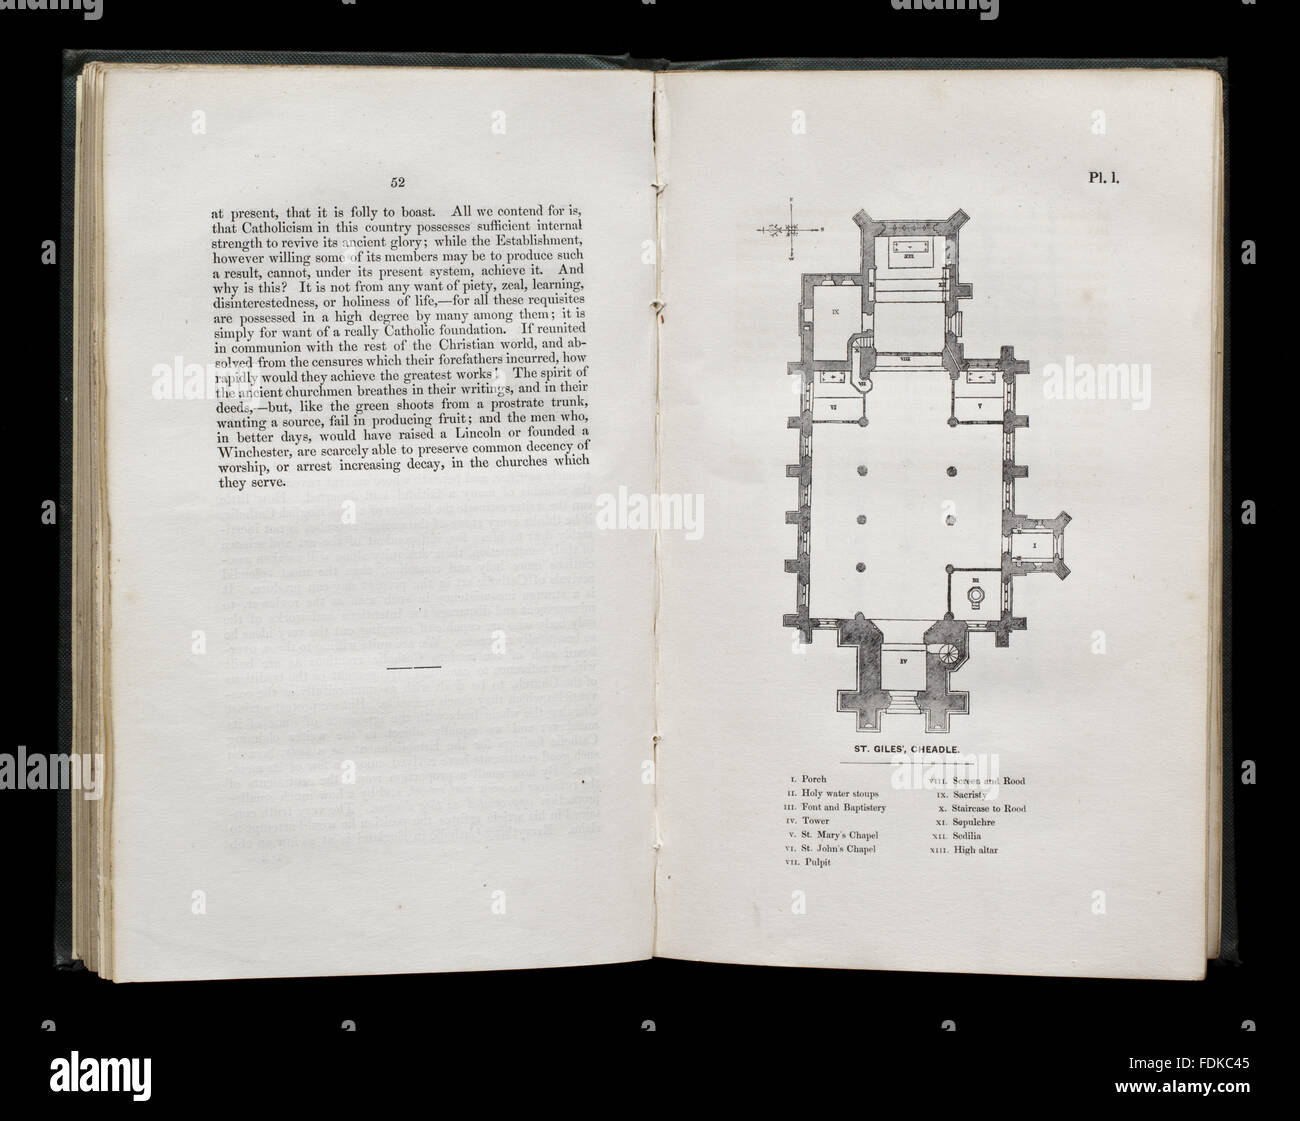 A.W.N. Pugin, The Present State of Ecclesiastical Architecture in England (London, 1843), at Chirk Castle, Wrexham. - Stock Image